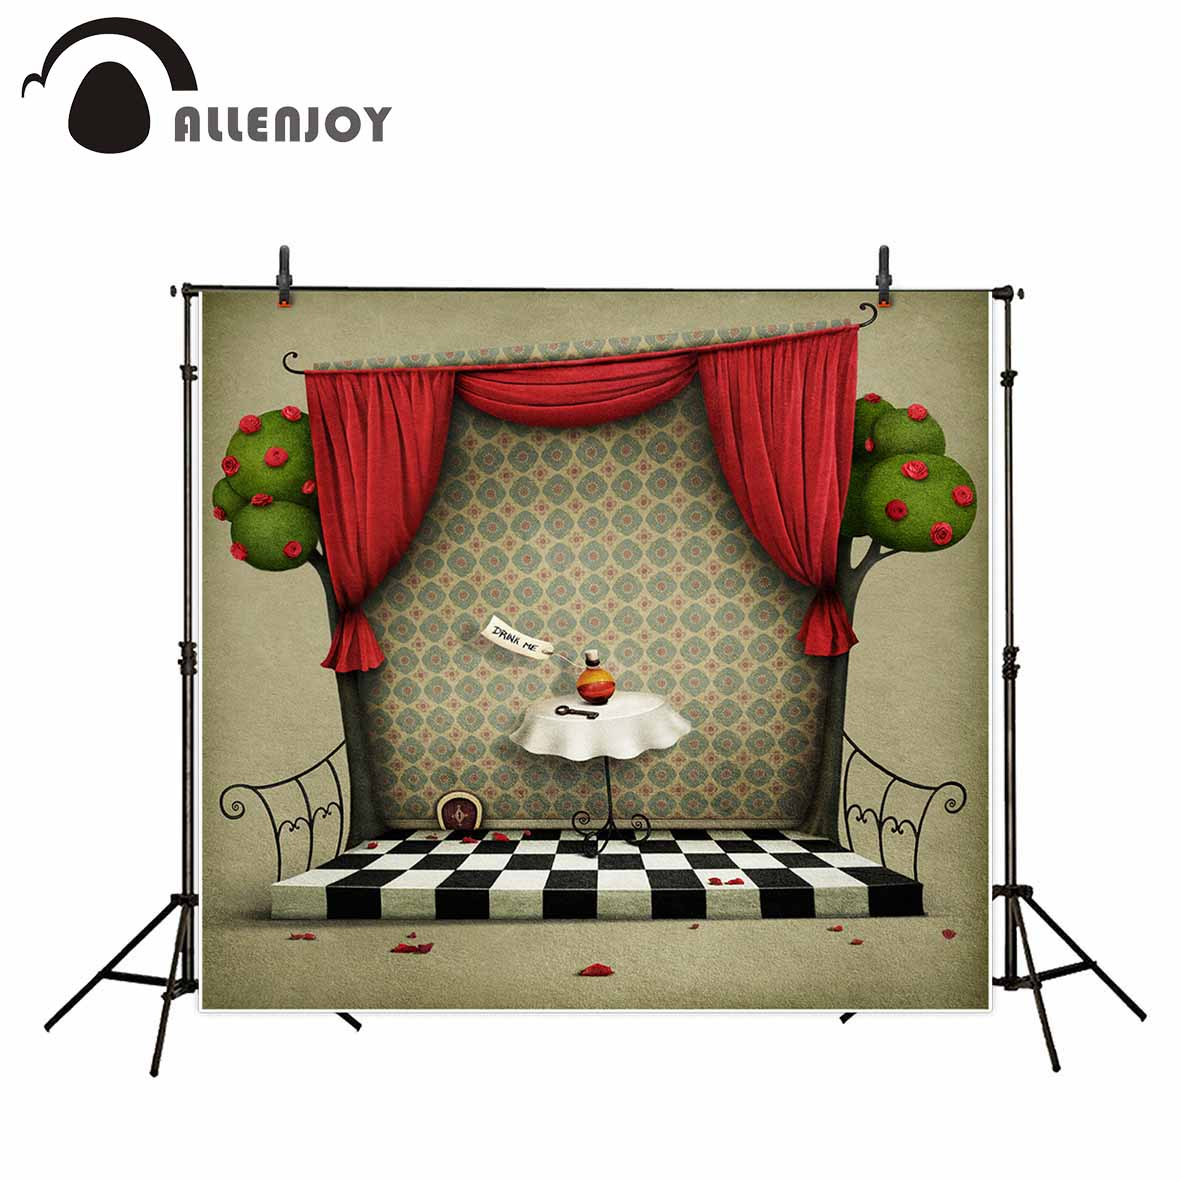 Allenjoy photographic background Cartoon puppet stage black and white lattice fairy tale new backdrop photocall photo customize